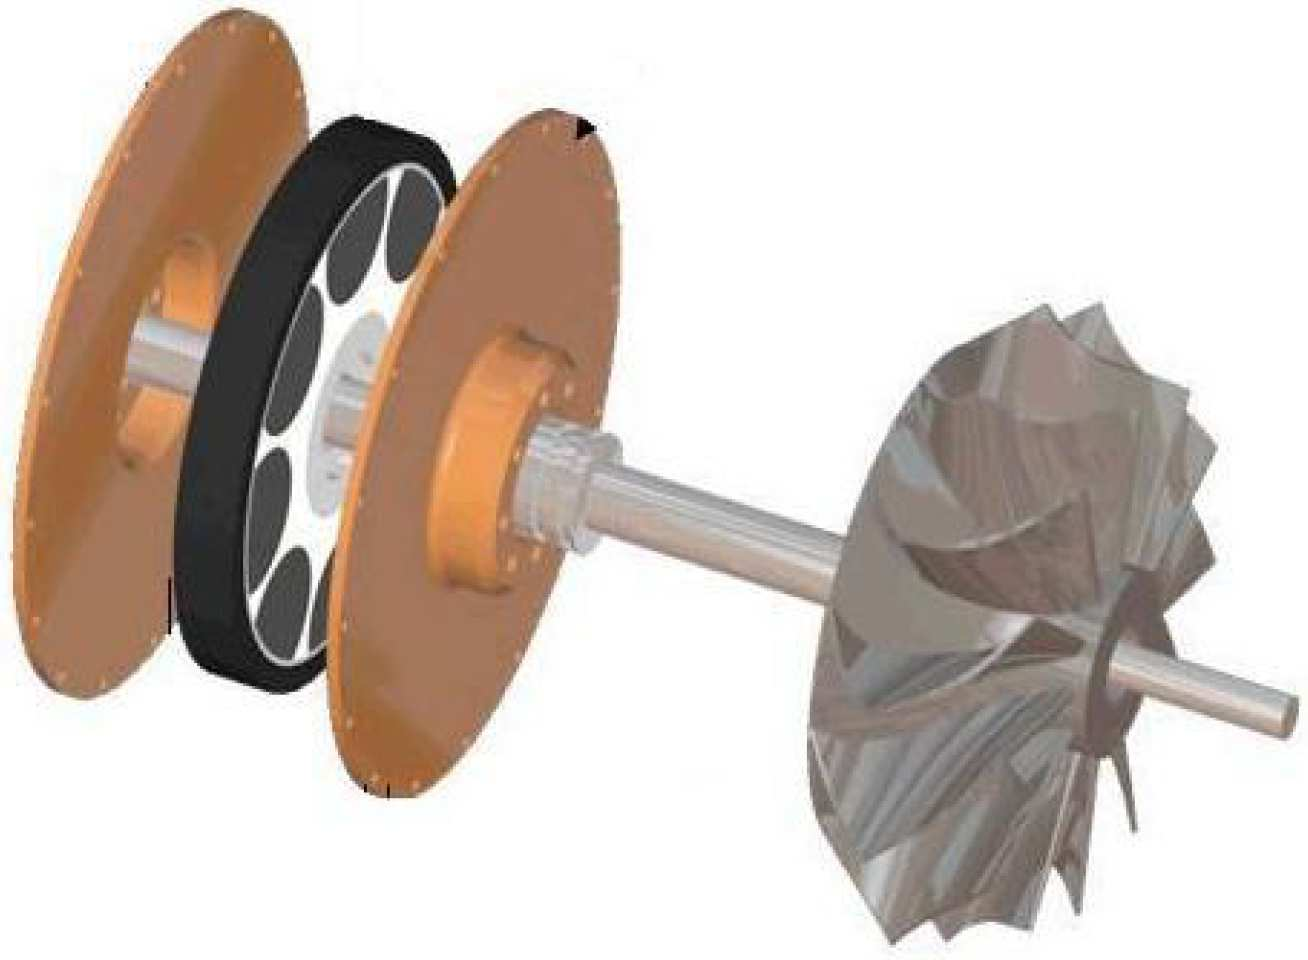 Main components of the dynamometer - the stators, the magnet and the rotor